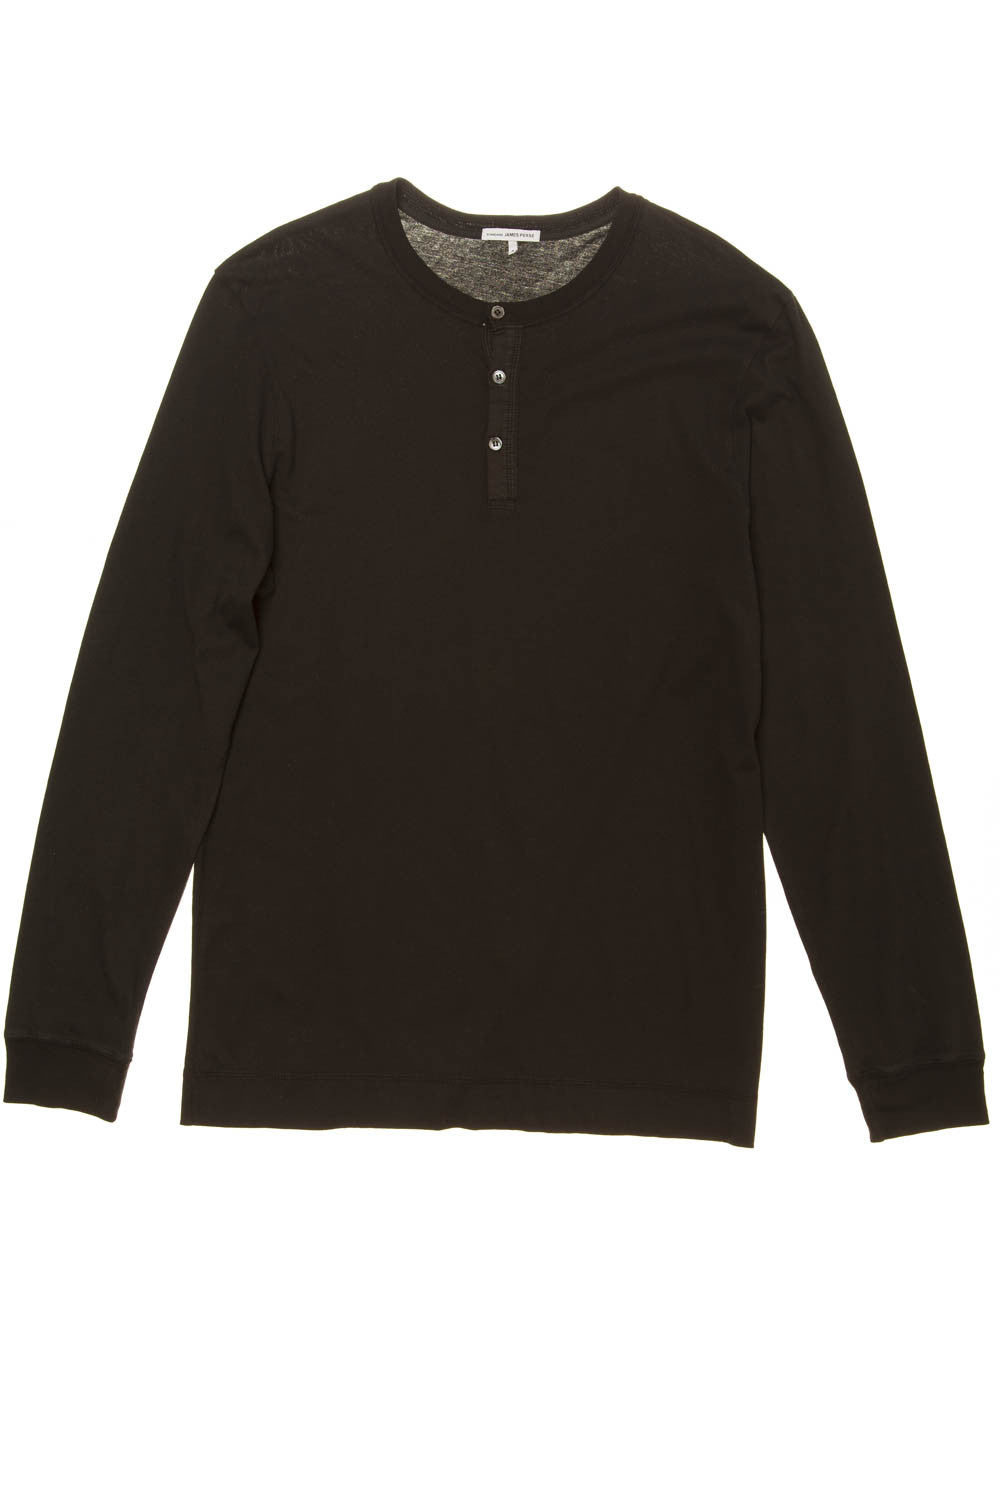 James Perse - Long Sleeve Black Shirt with Buttons - US 3